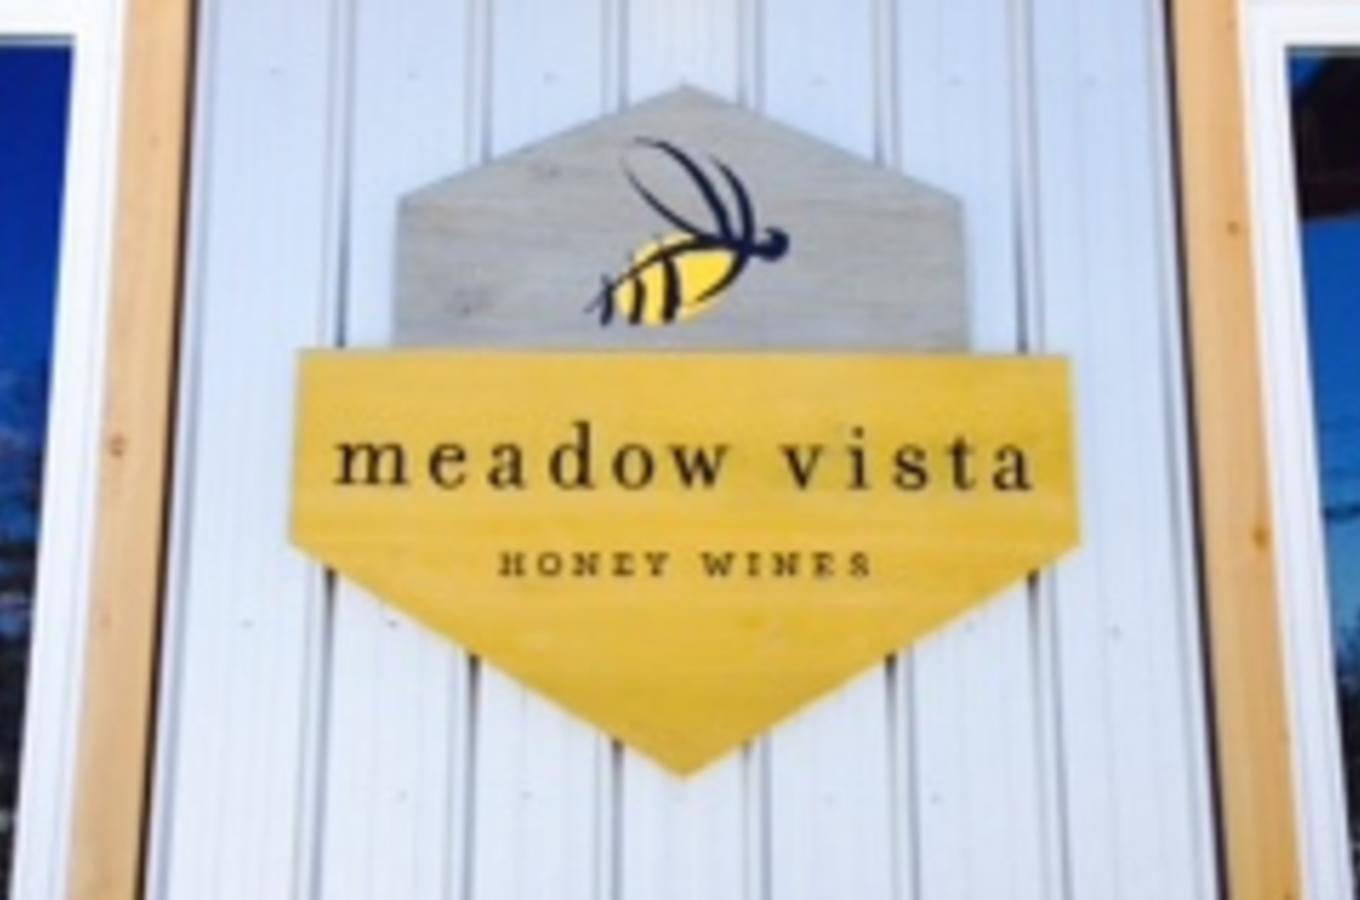 Meadow Vista Image